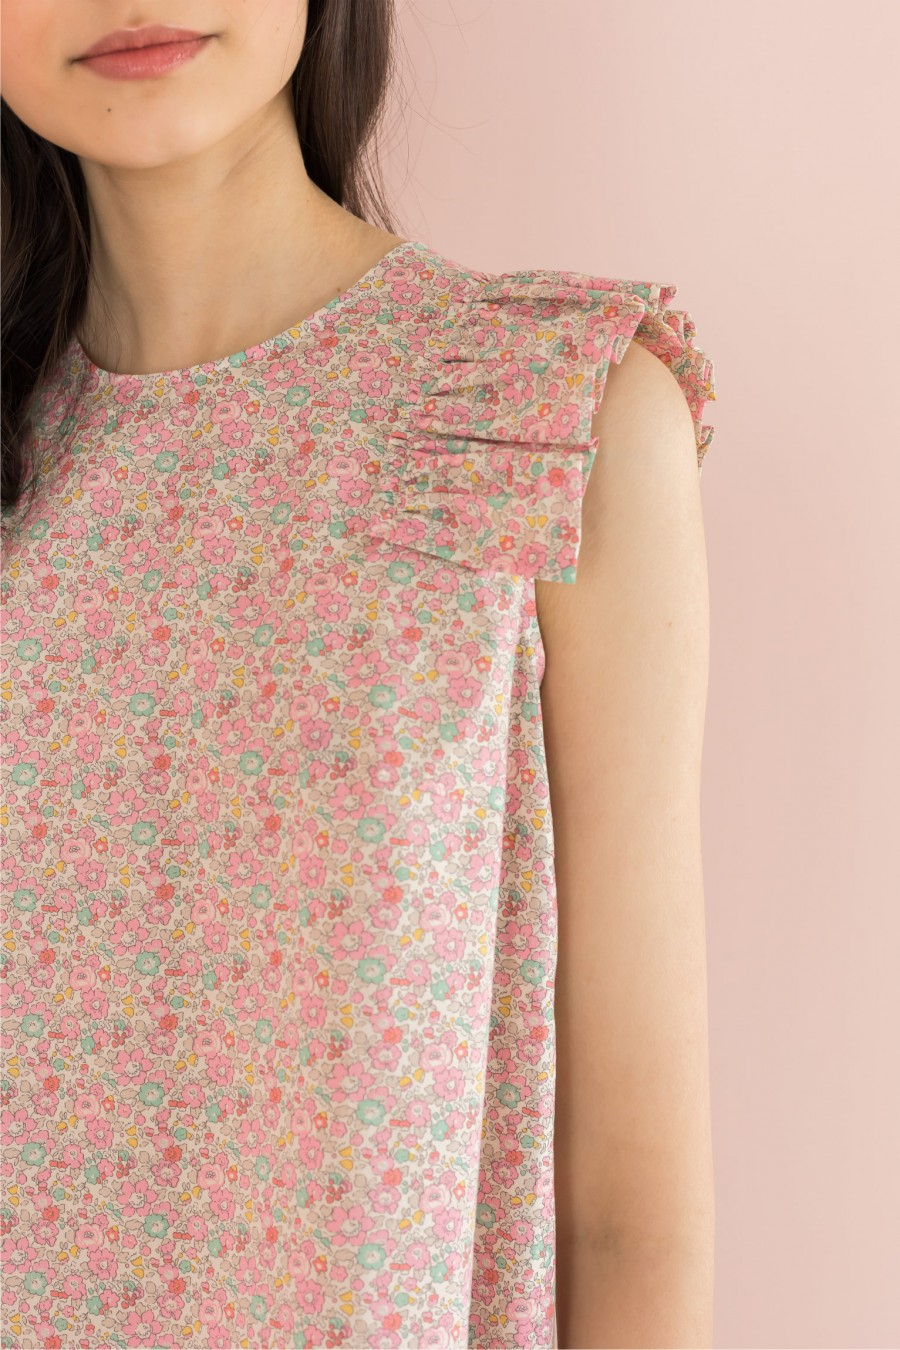 pink top with cap sleeves